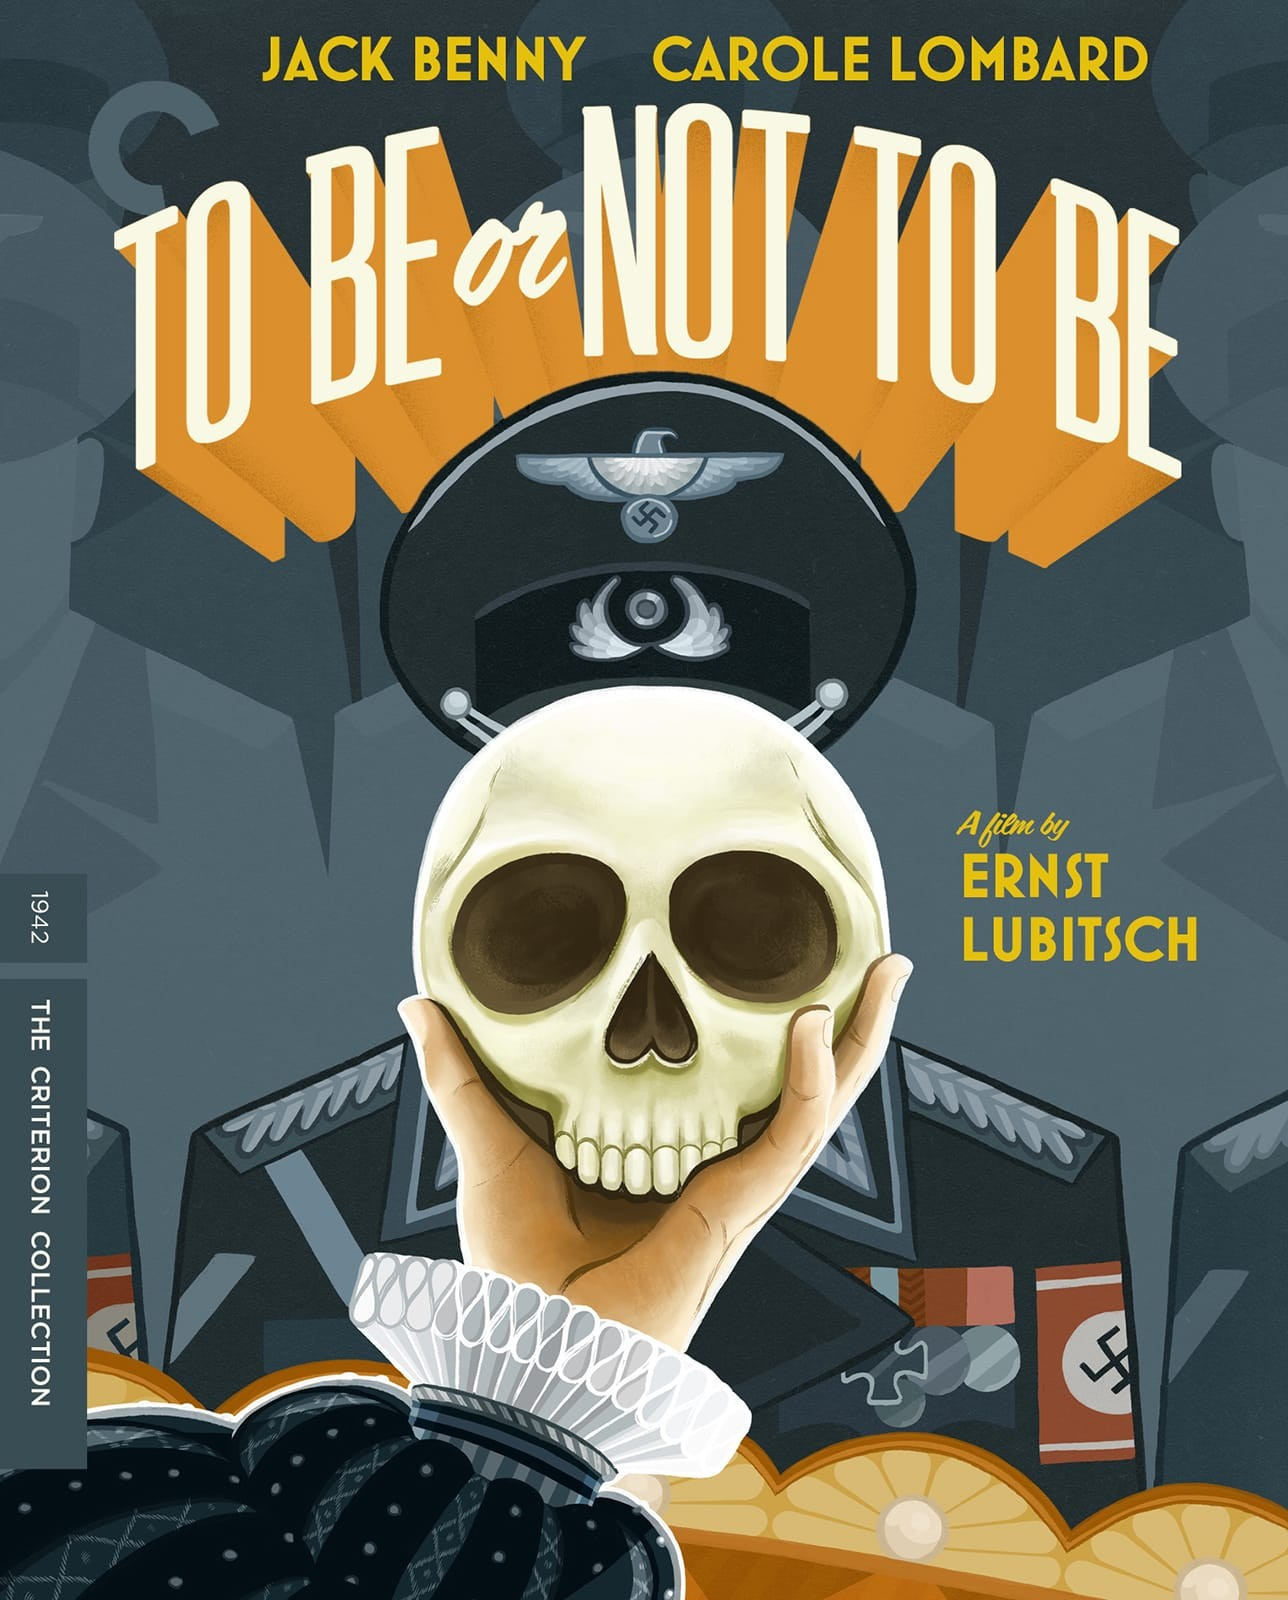 To Be Or Not To Be (1942) Trailer - YouTube